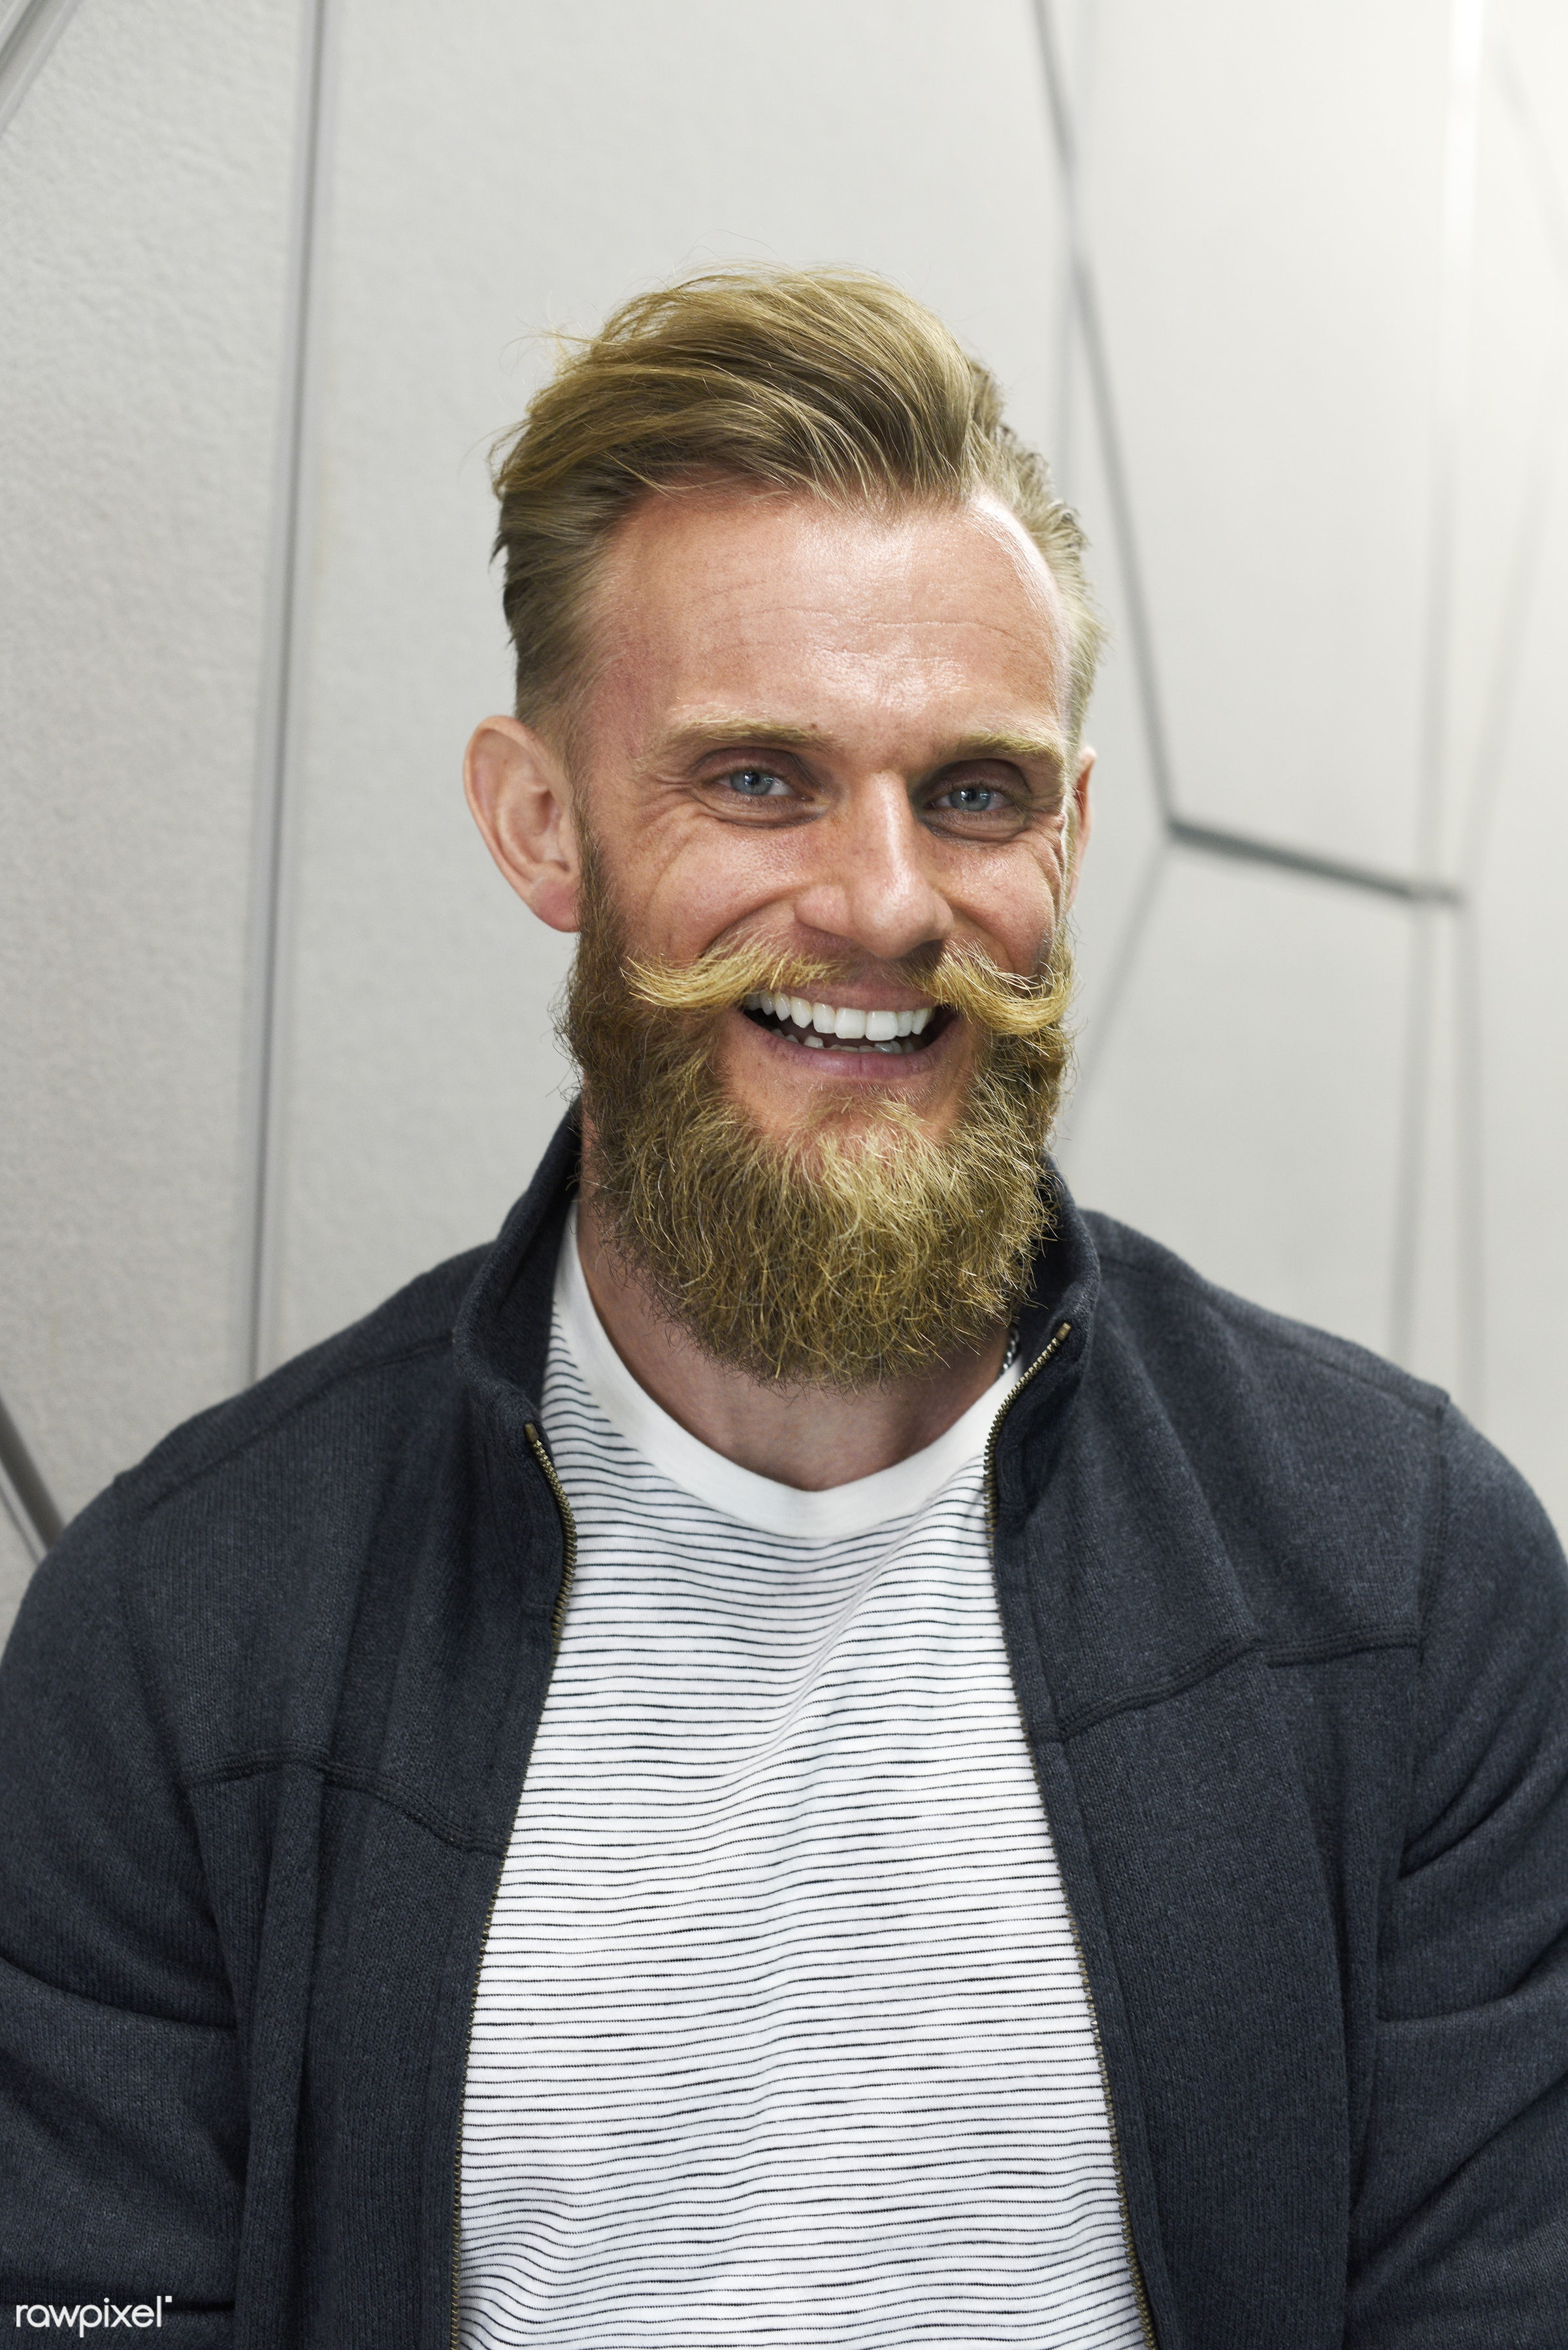 alone, beard, casual, caucasian, cheerful, confident, emotion, enjoyment, expression, face, feeling, gesture, guy, male, man...